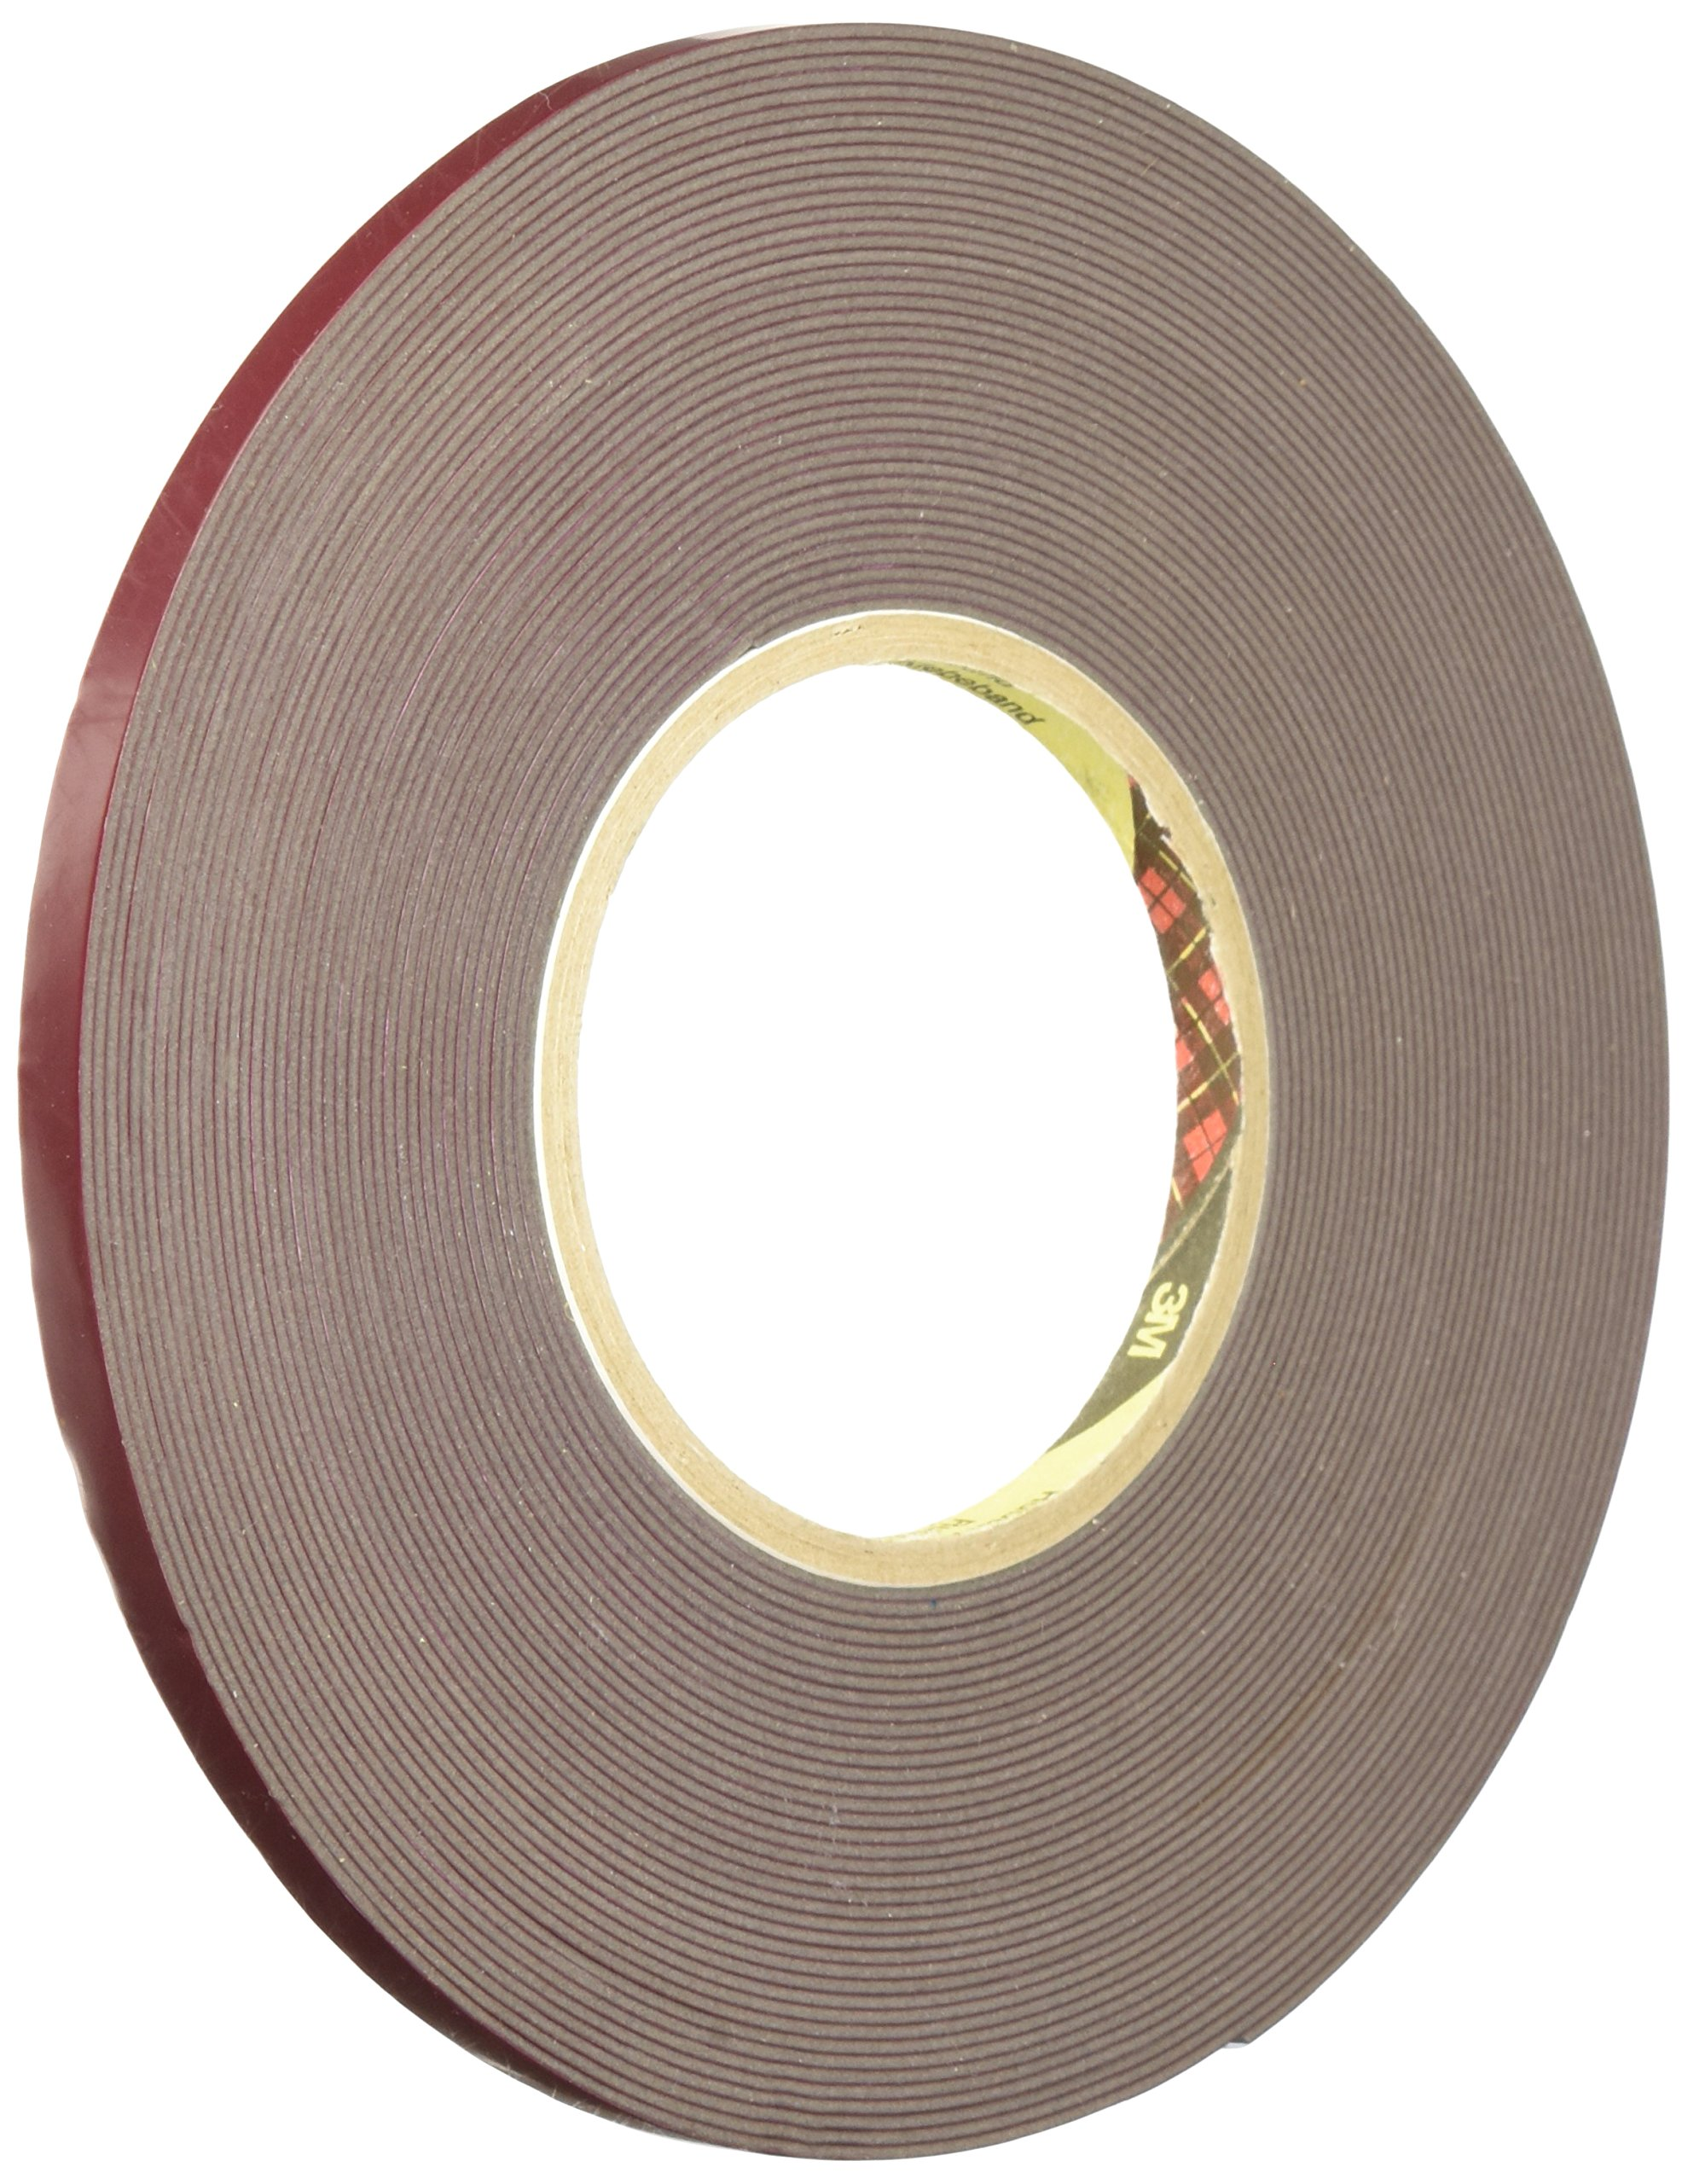 Genuine Audi 8R0067545A Adhesive Tape for Wheel Cover